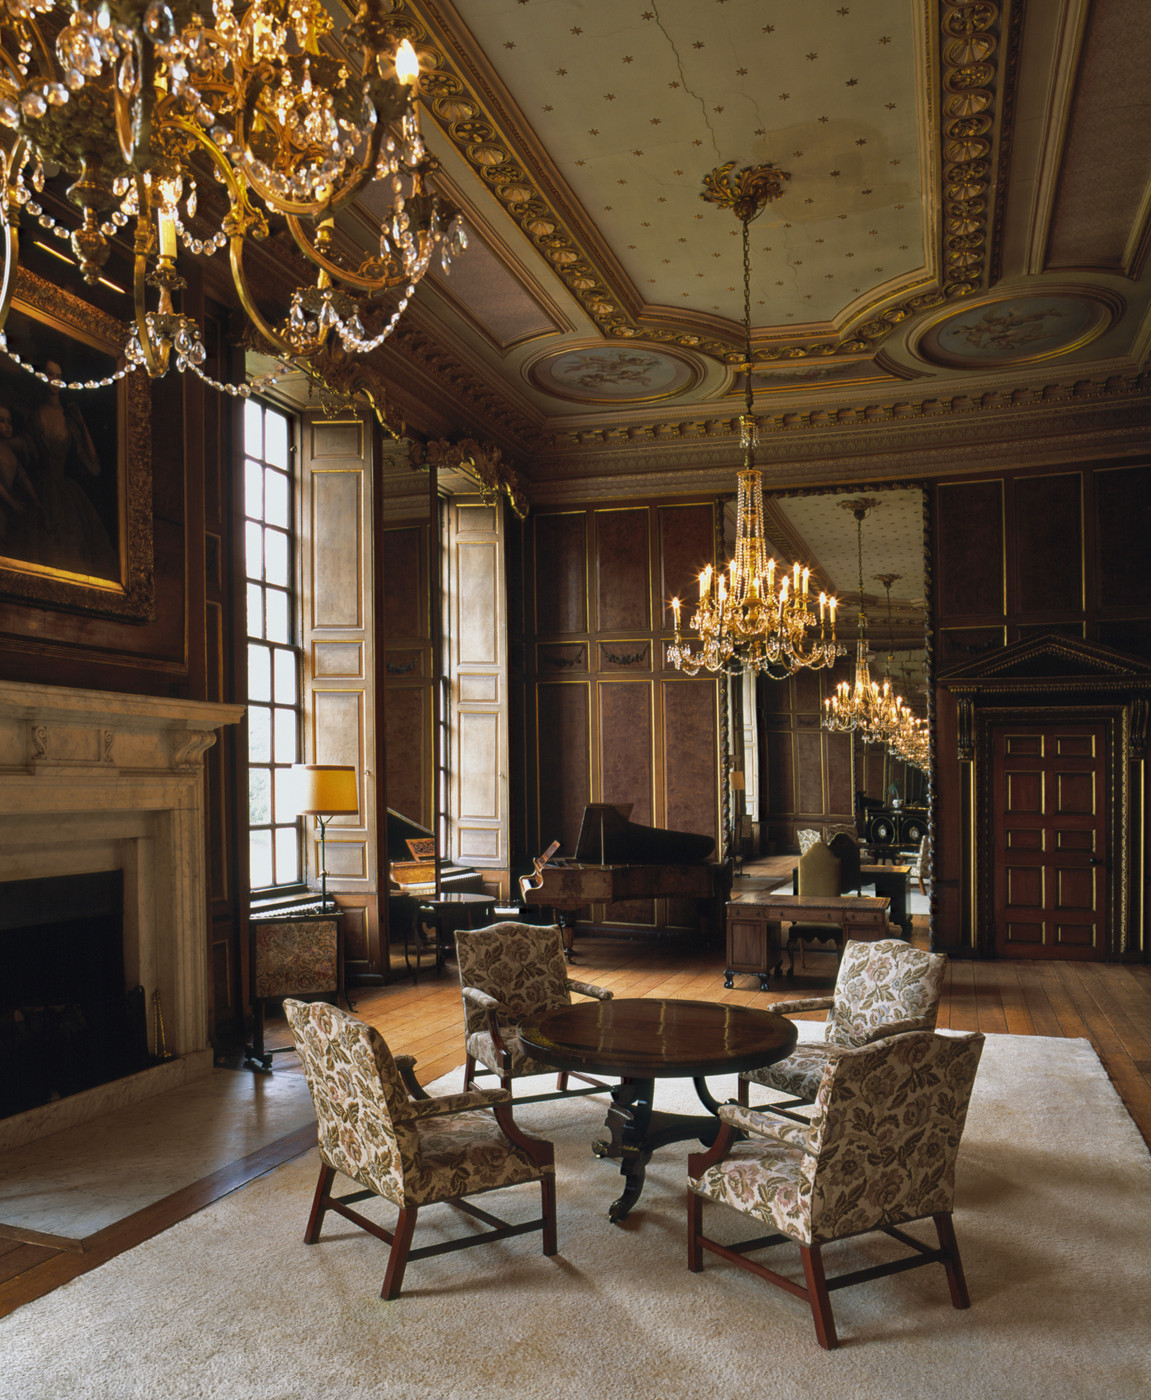 Traditional drawing room with high ceilings